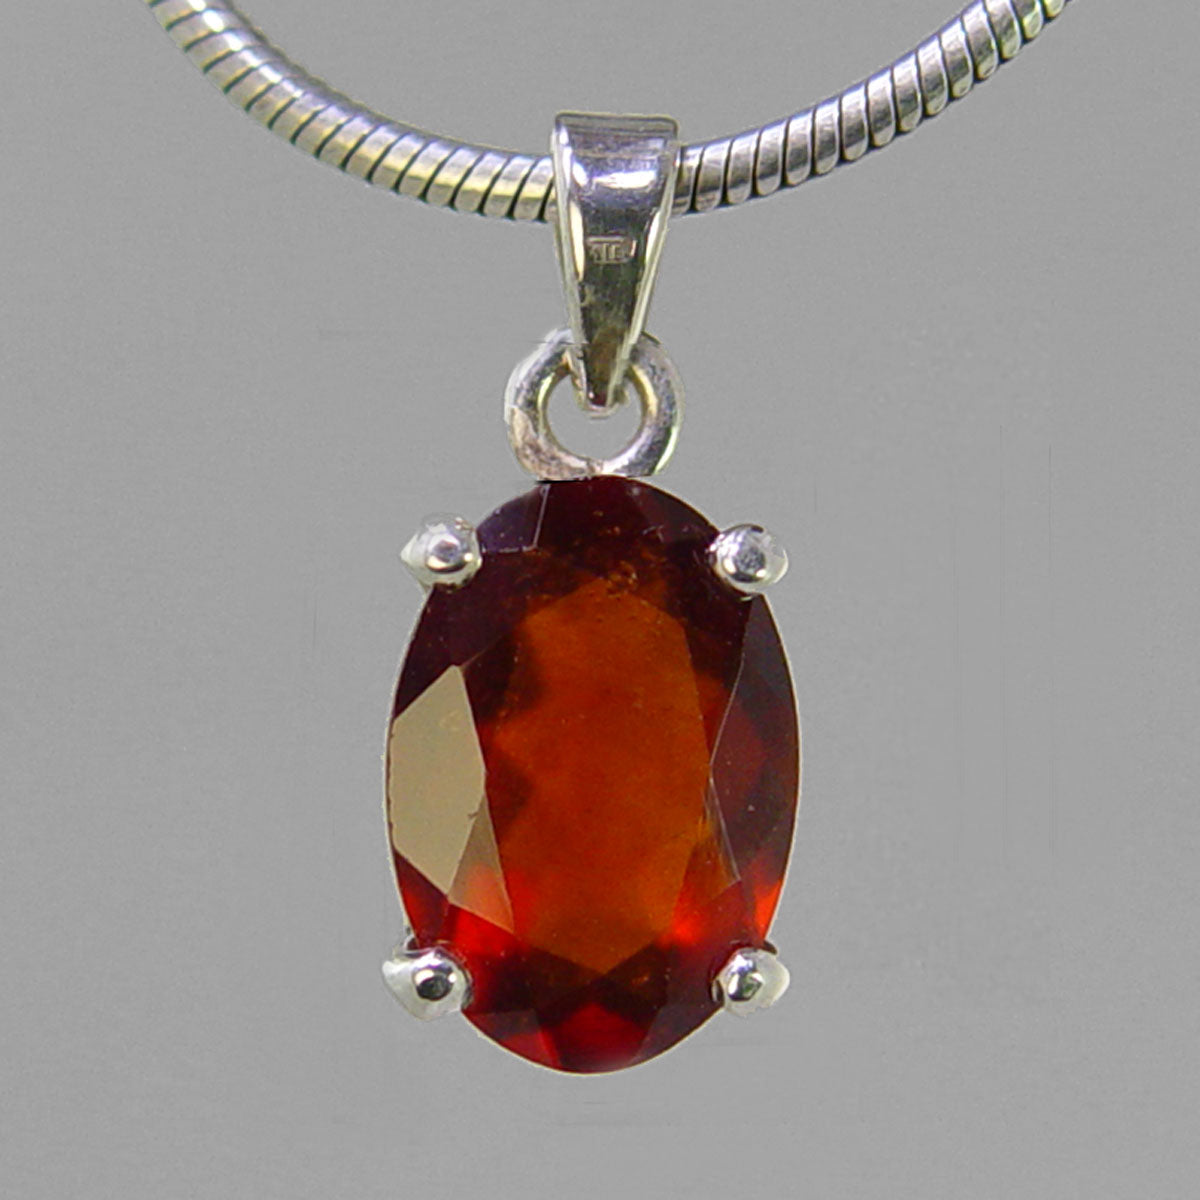 Hessonite Garnet 7.1 ct Faceted Oval Sterling Silver Pendant